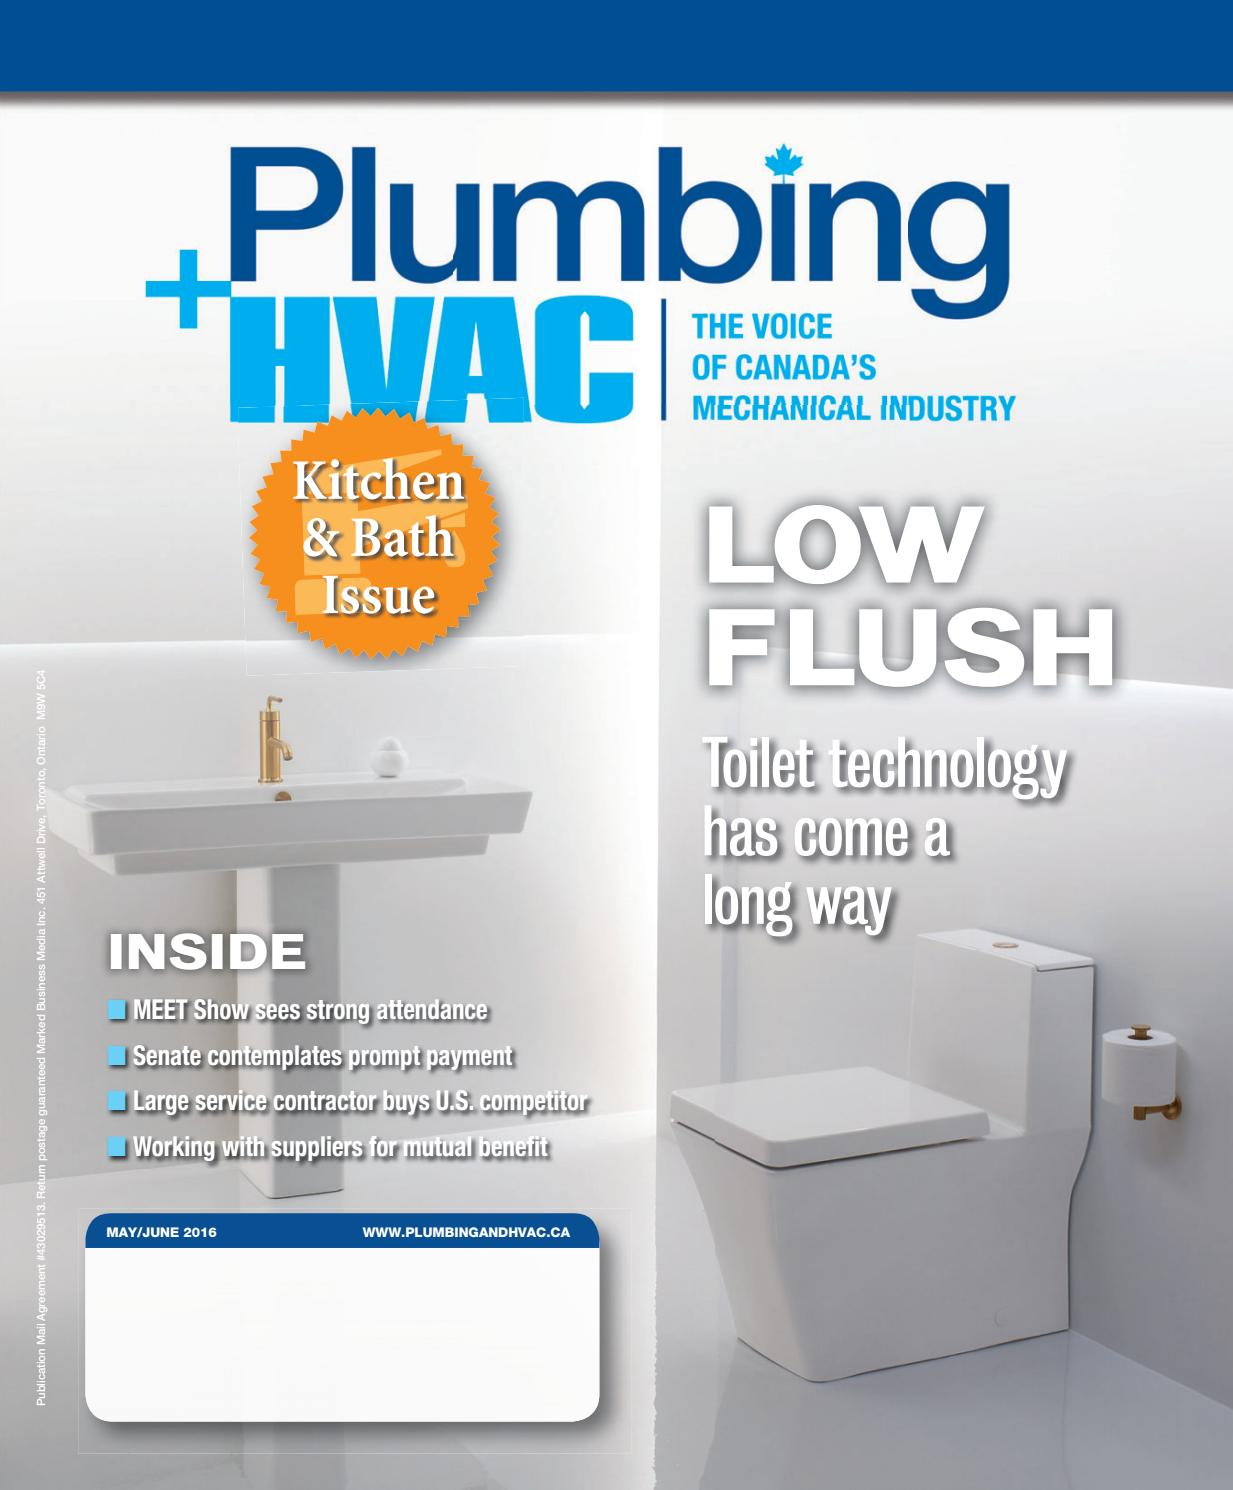 May/June 2016 by Plumbing and HVAC - issuu